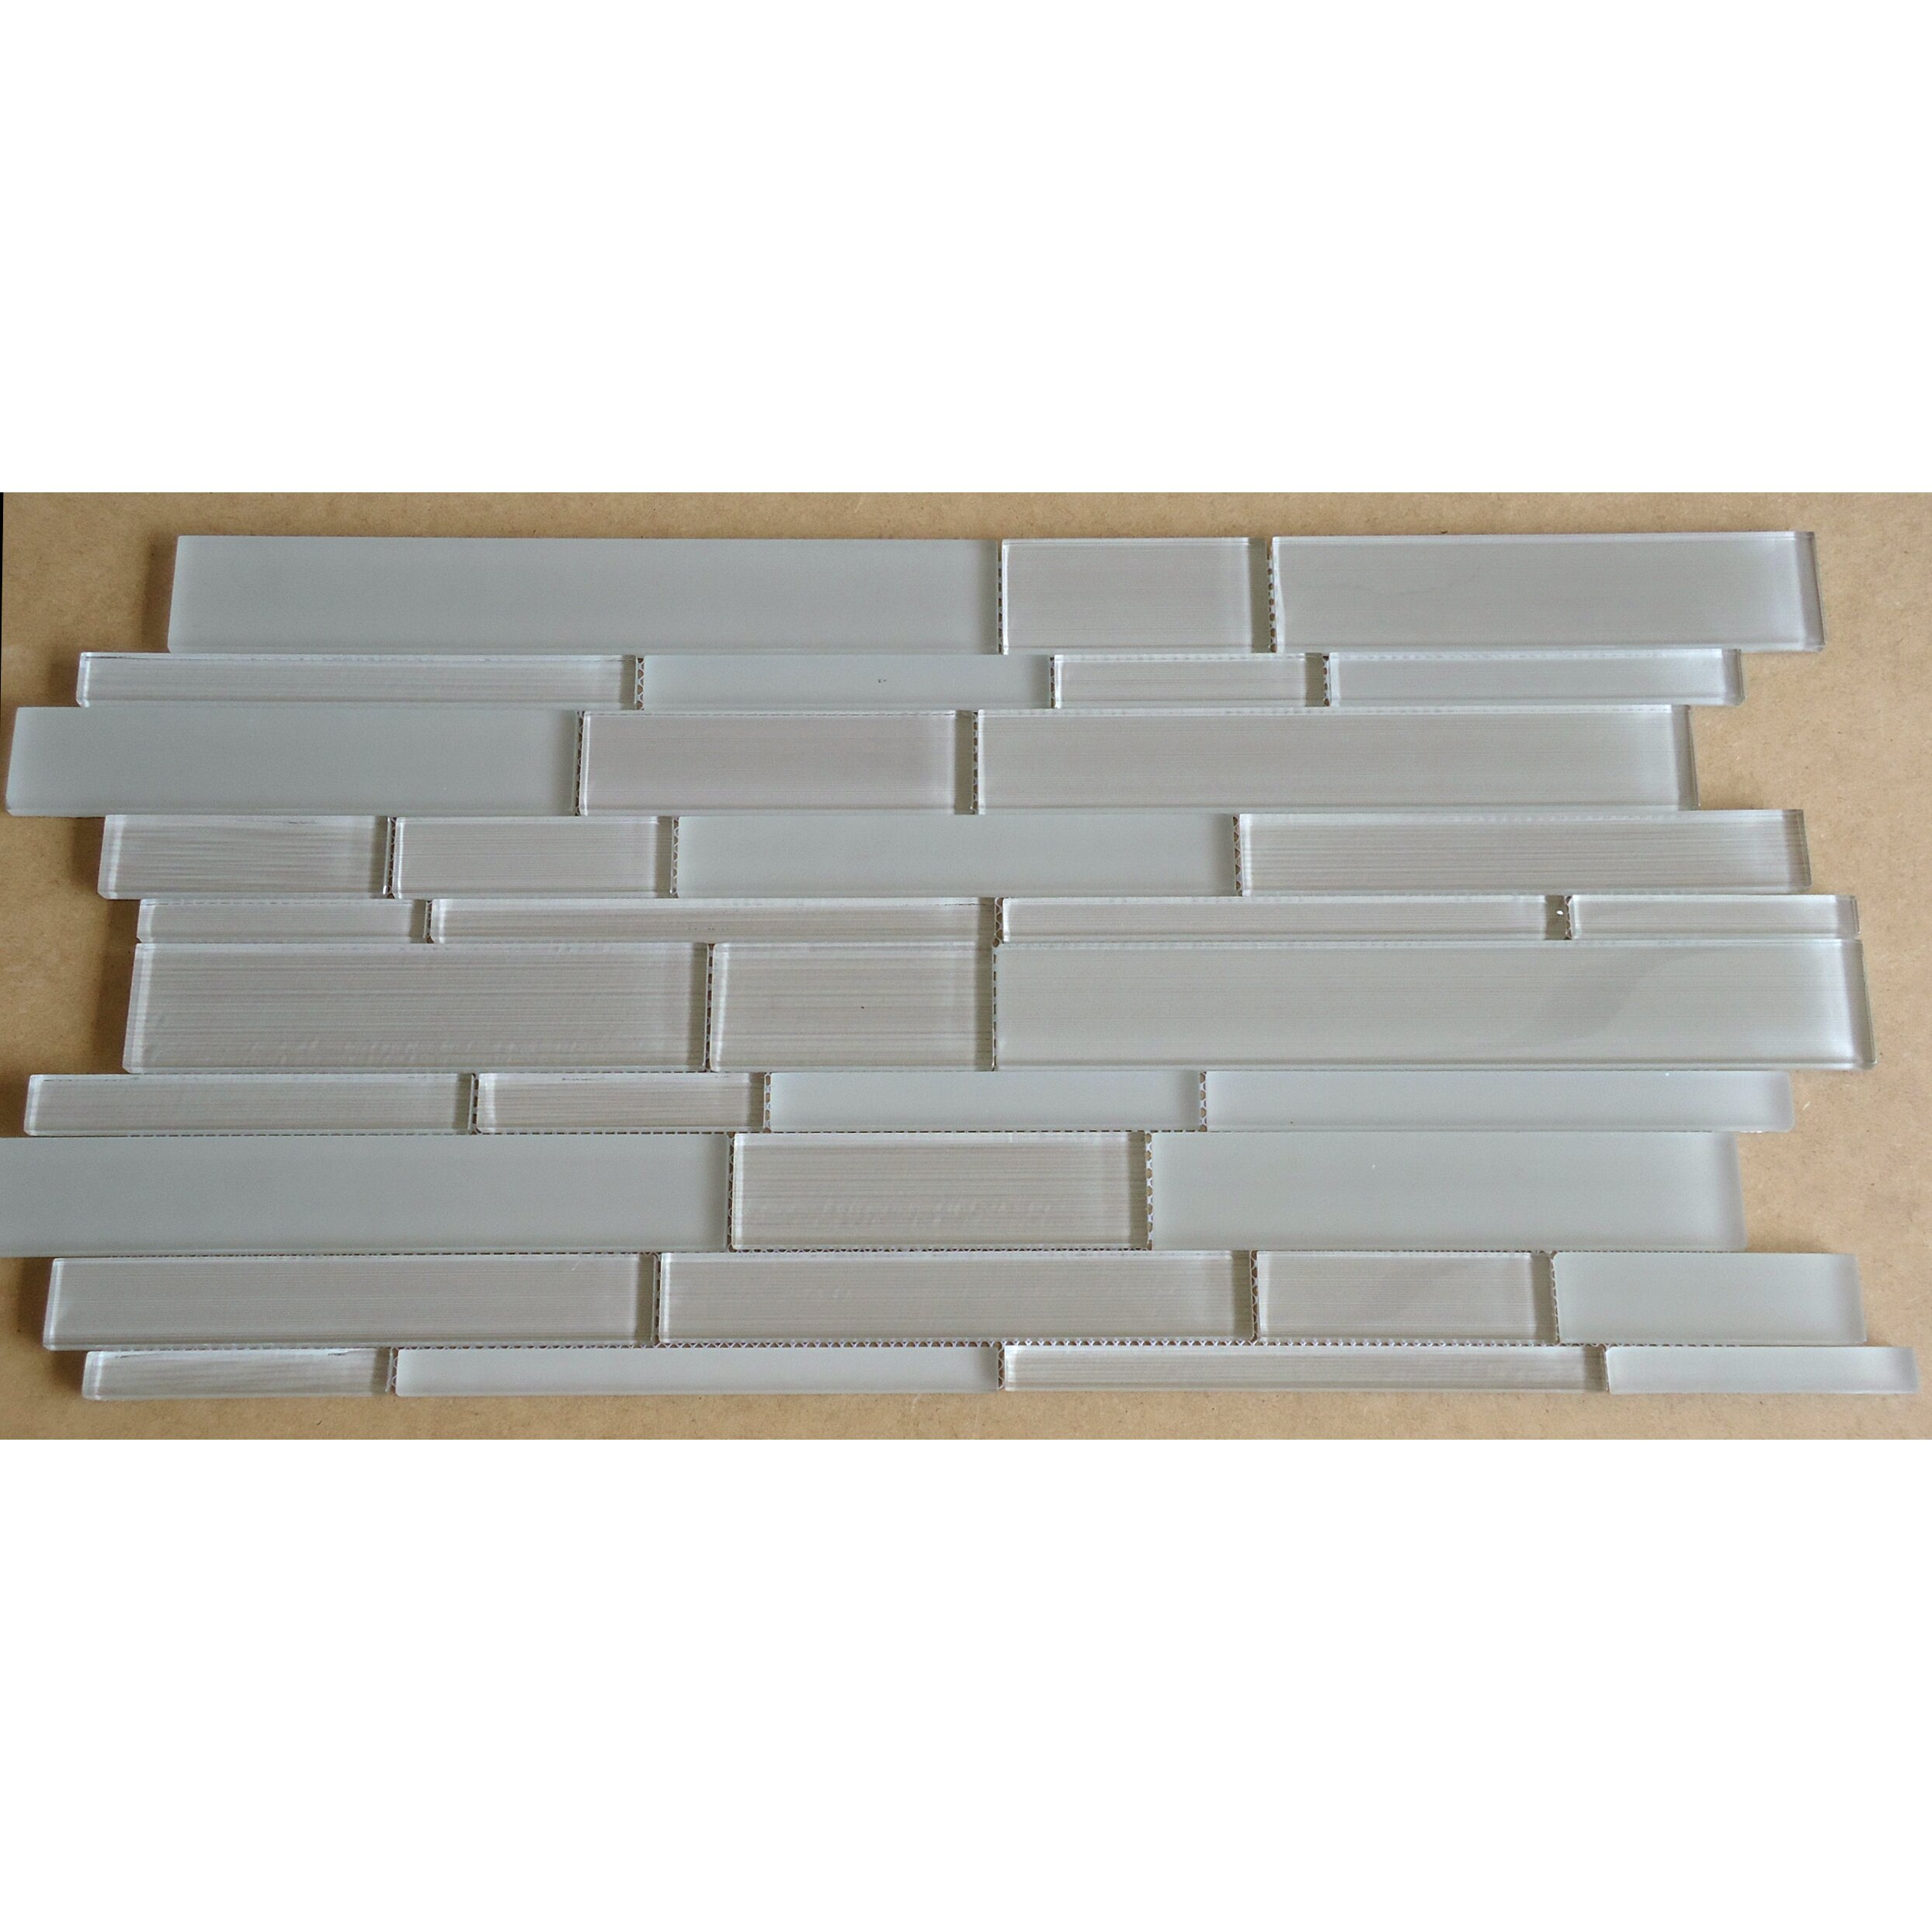 Mulia Tile Studio Random Sized Glass Mosaic Tile in Taupe & Reviews